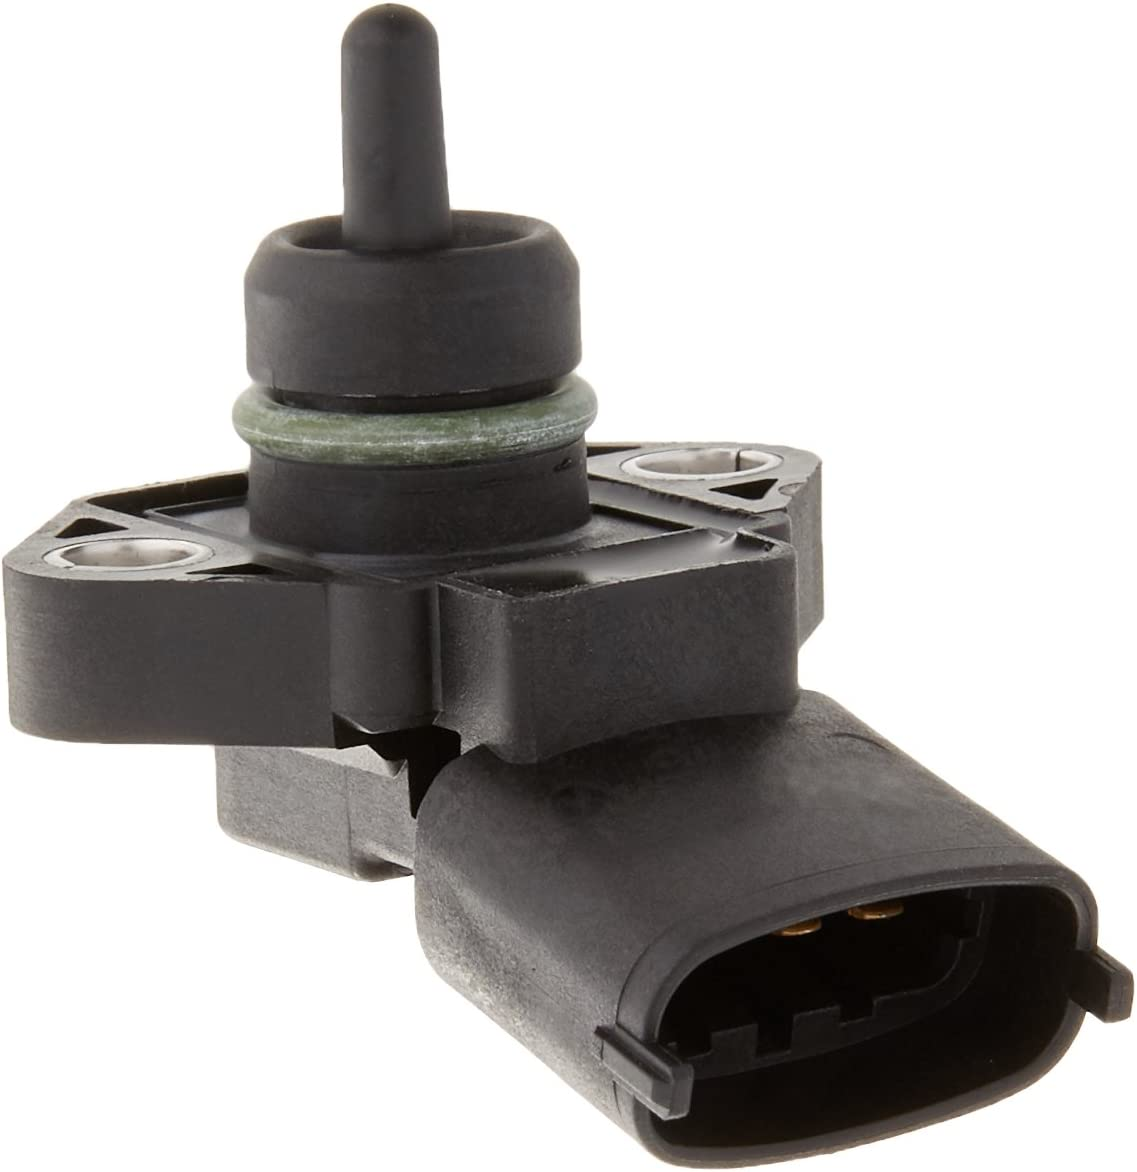 Bosch 0261230013 Original Equipment Pressure/Temperature Sensor